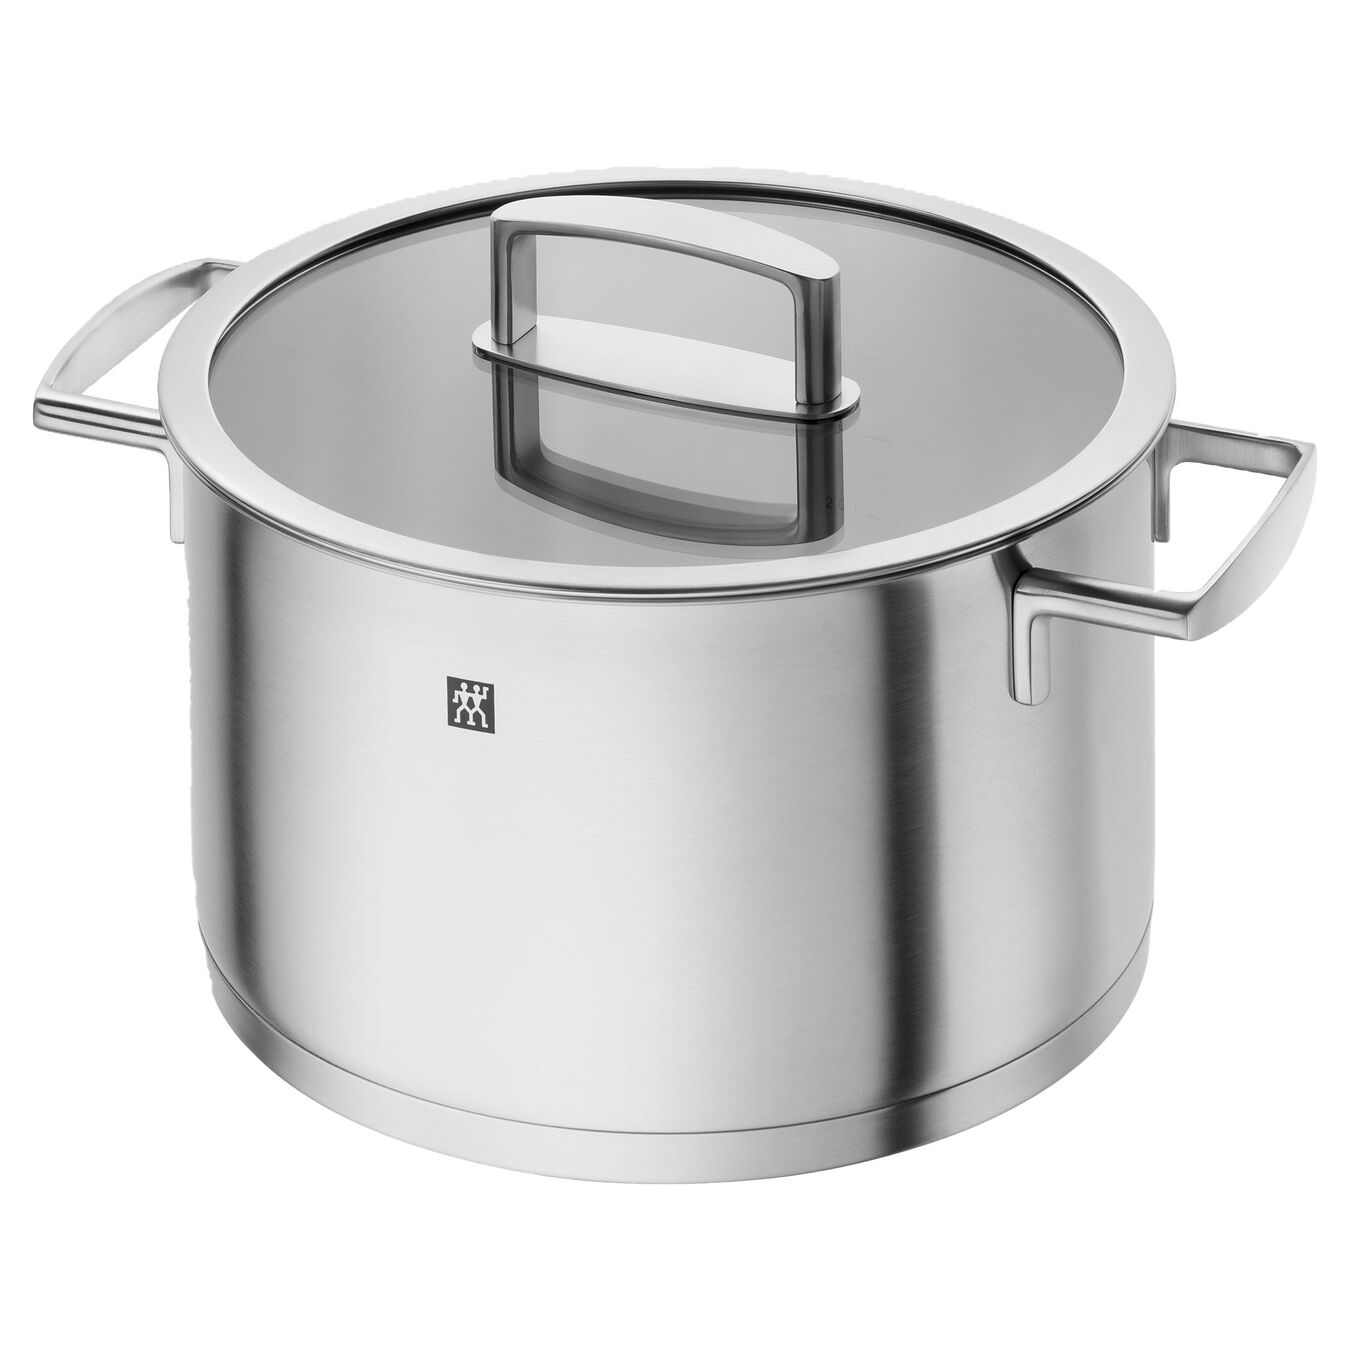 Pot set, 10 Piece   round   18/10 Stainless Steel,,large 6